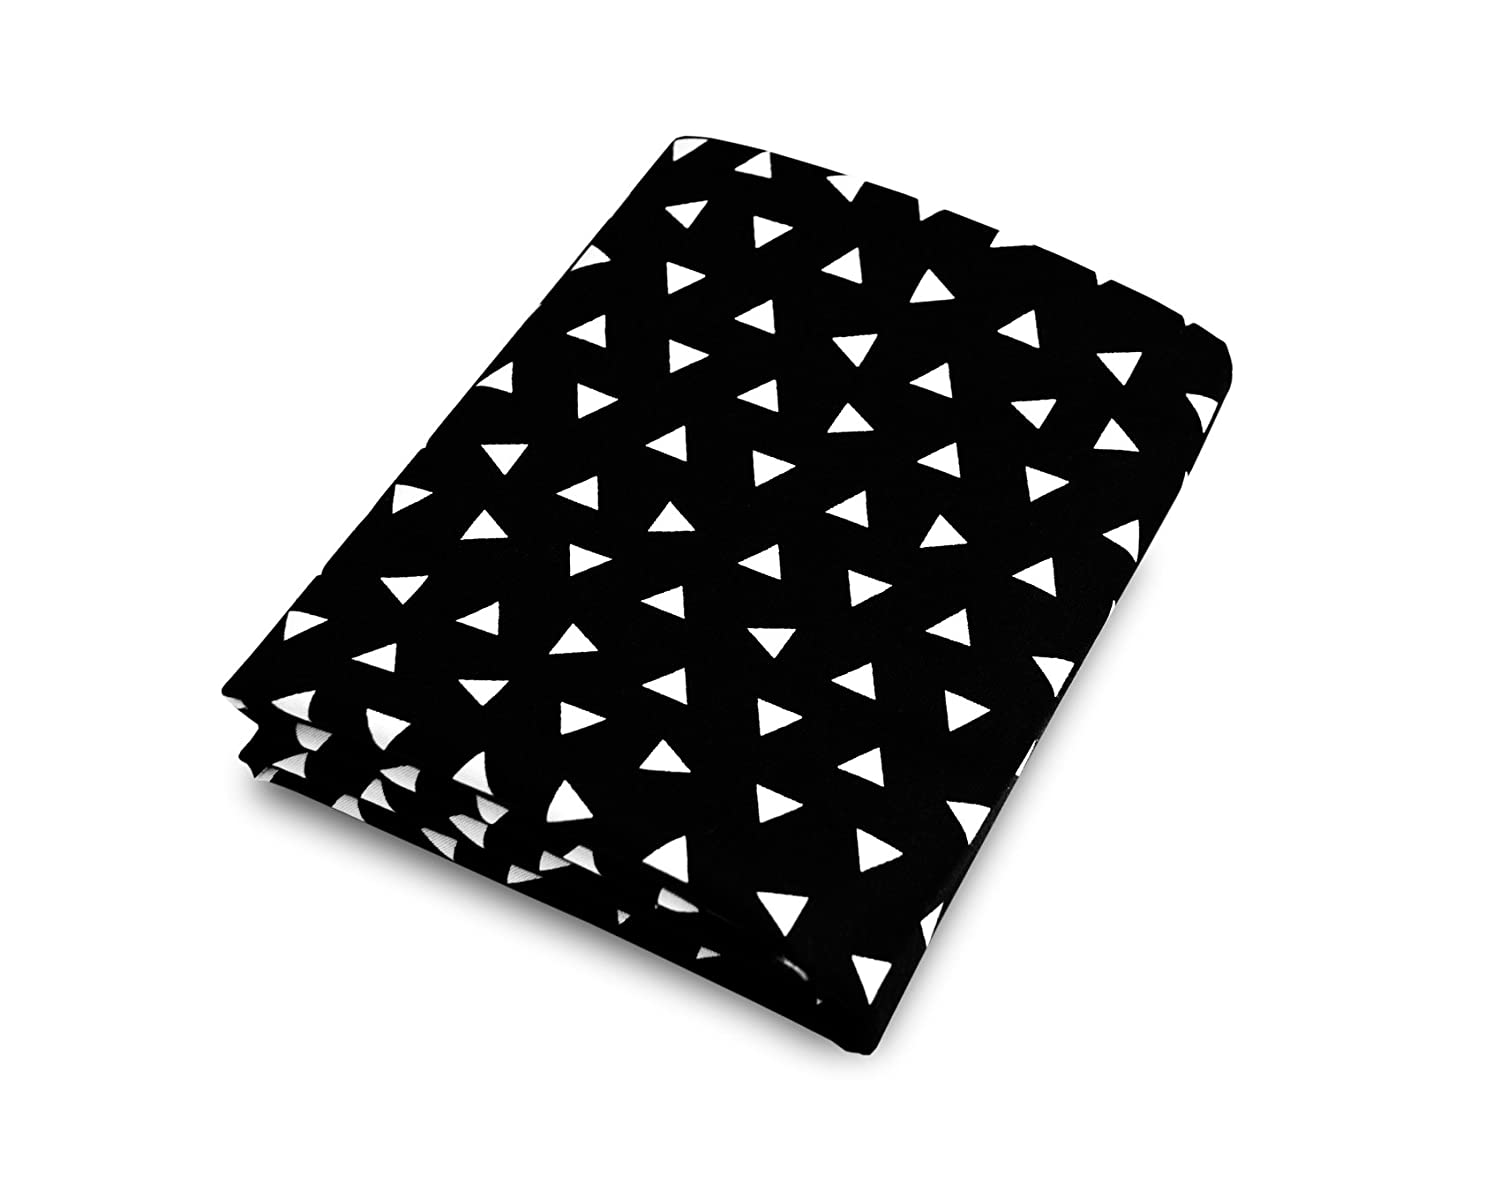 Olli & Lime Triangle Crib Sheet, Black/White by Olli & Lime   B016877P38